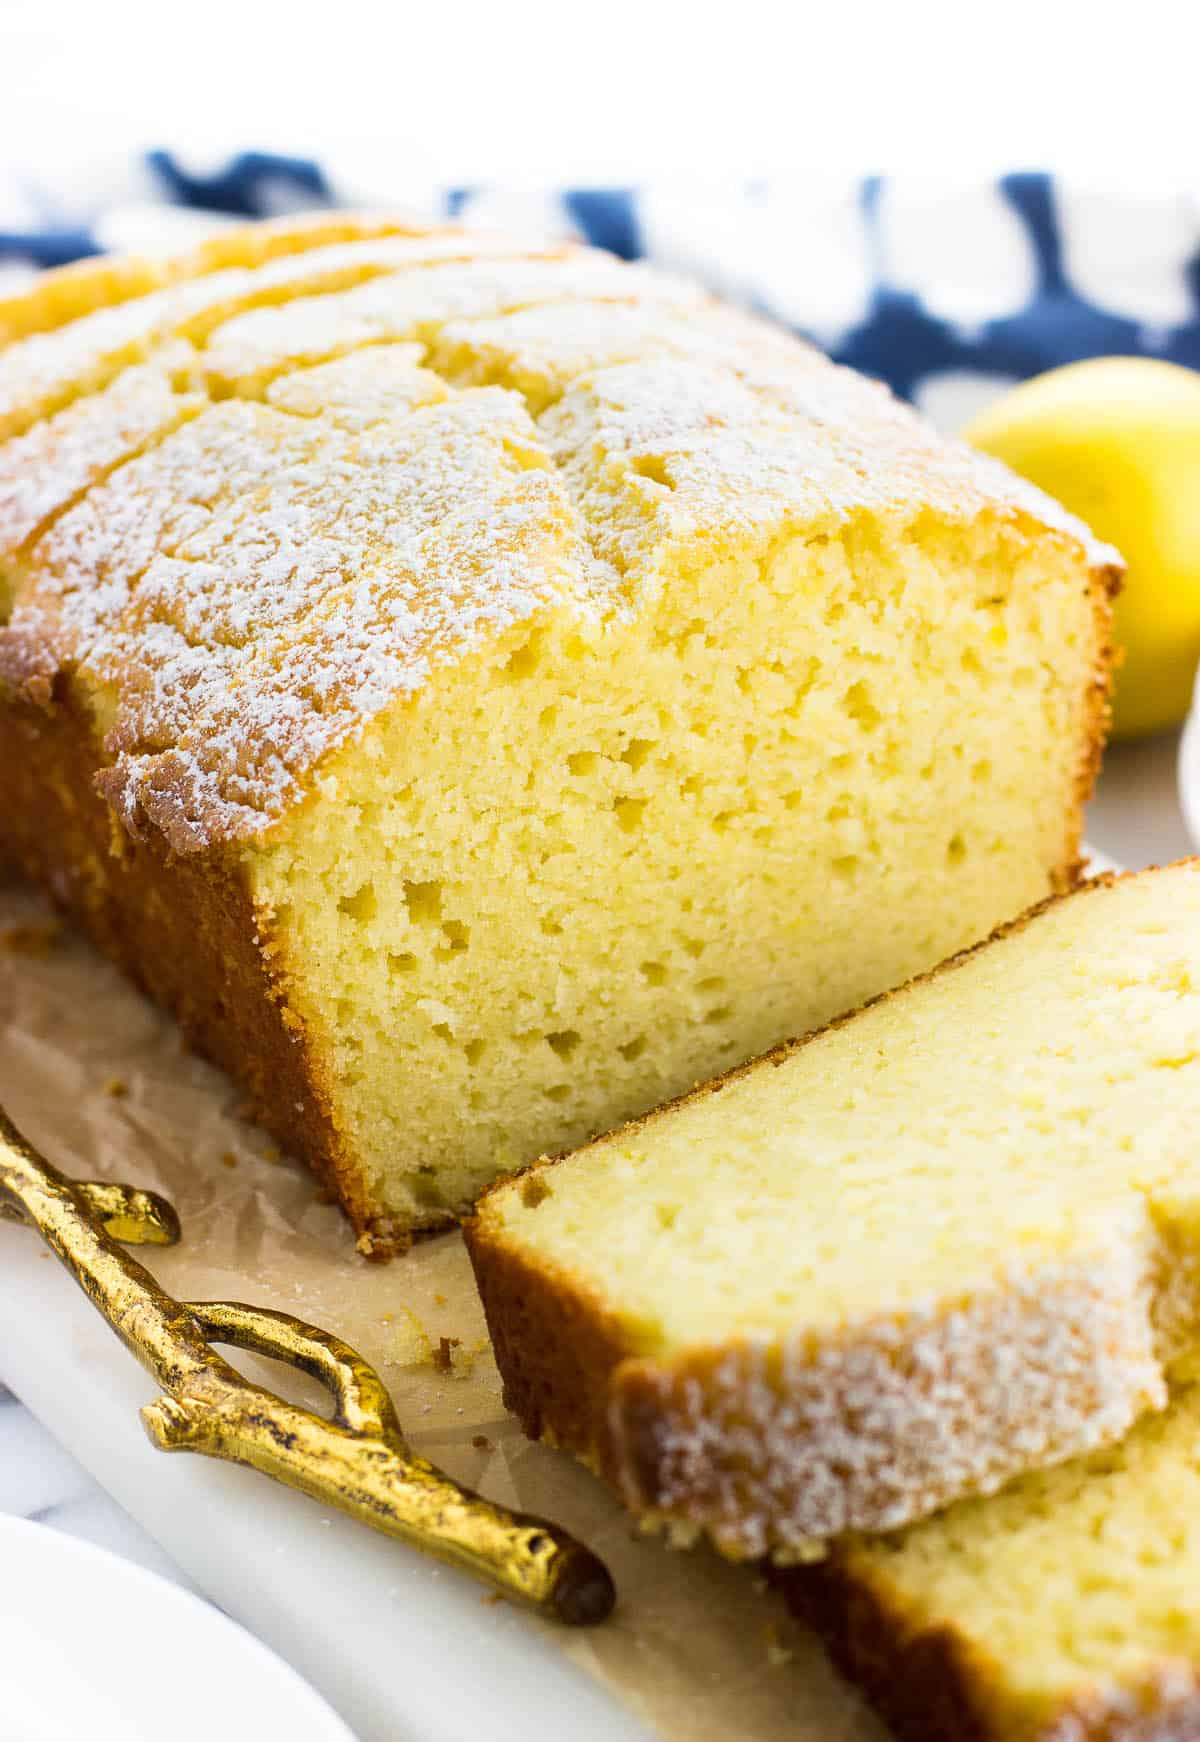 Lemon yogurt cake sliced on a tray dusted with confectioners' sugar.